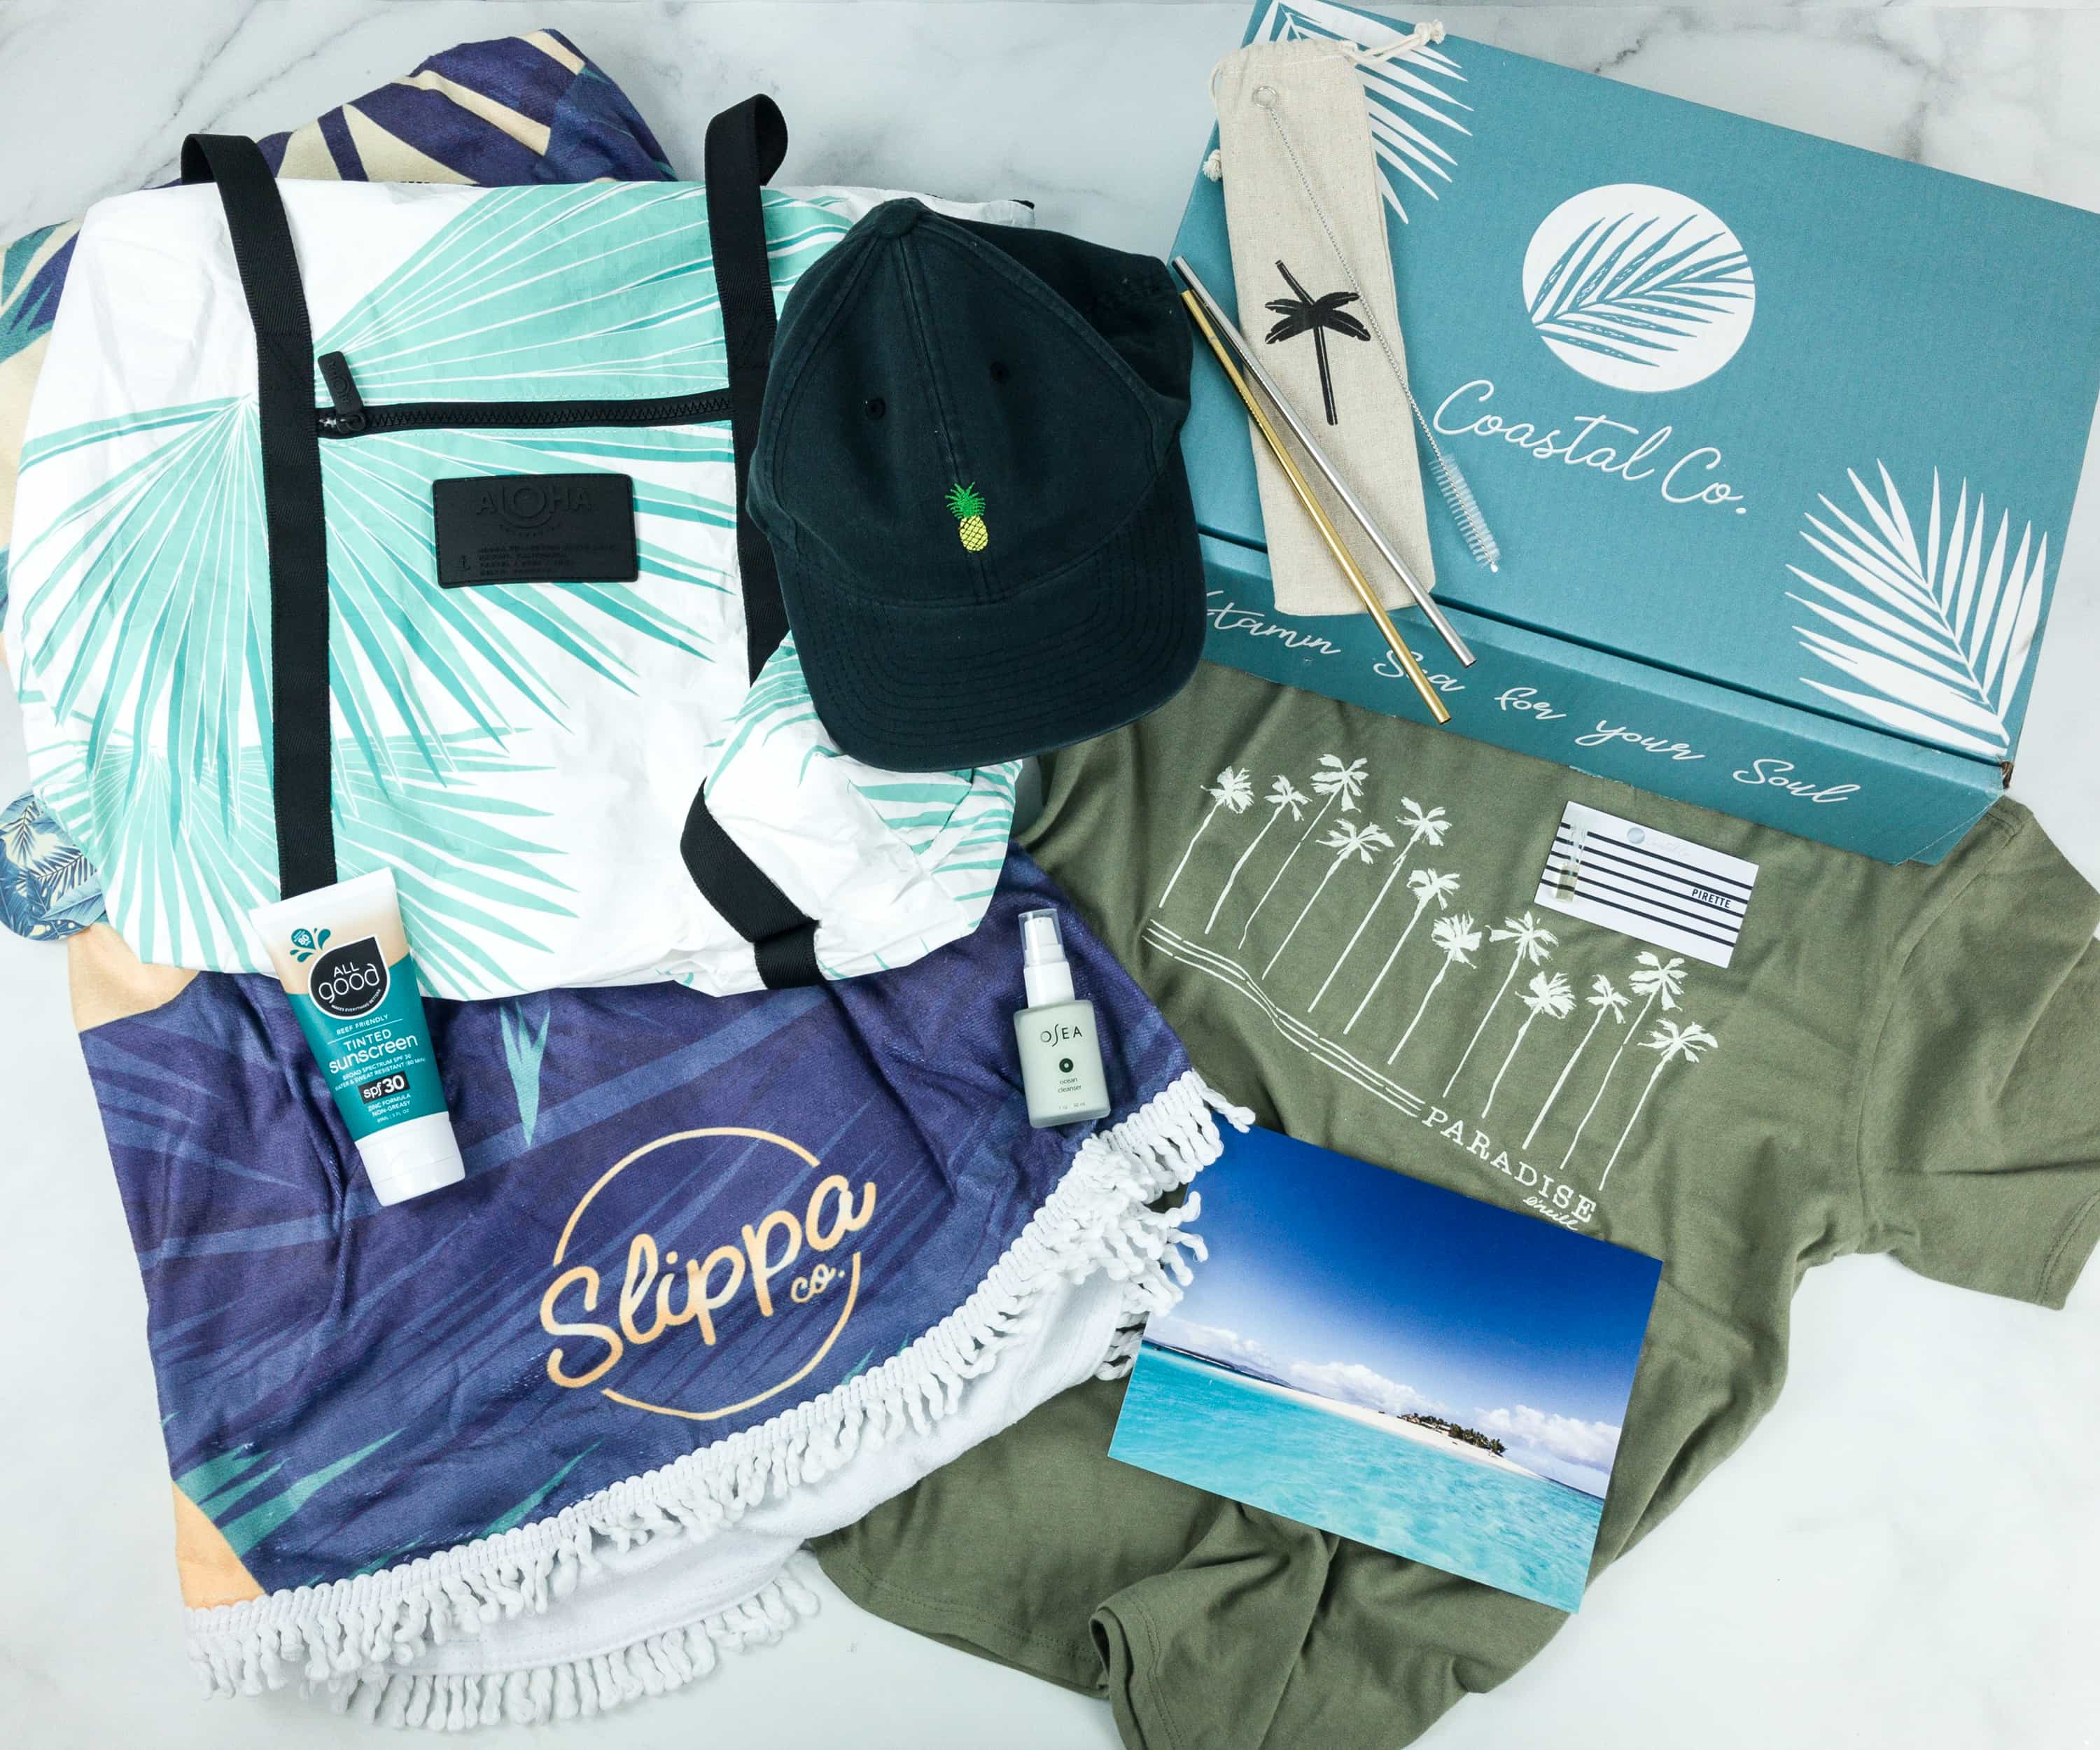 Coastal Co. Women's Box Summer 2019 Subscription Box Review + Coupon